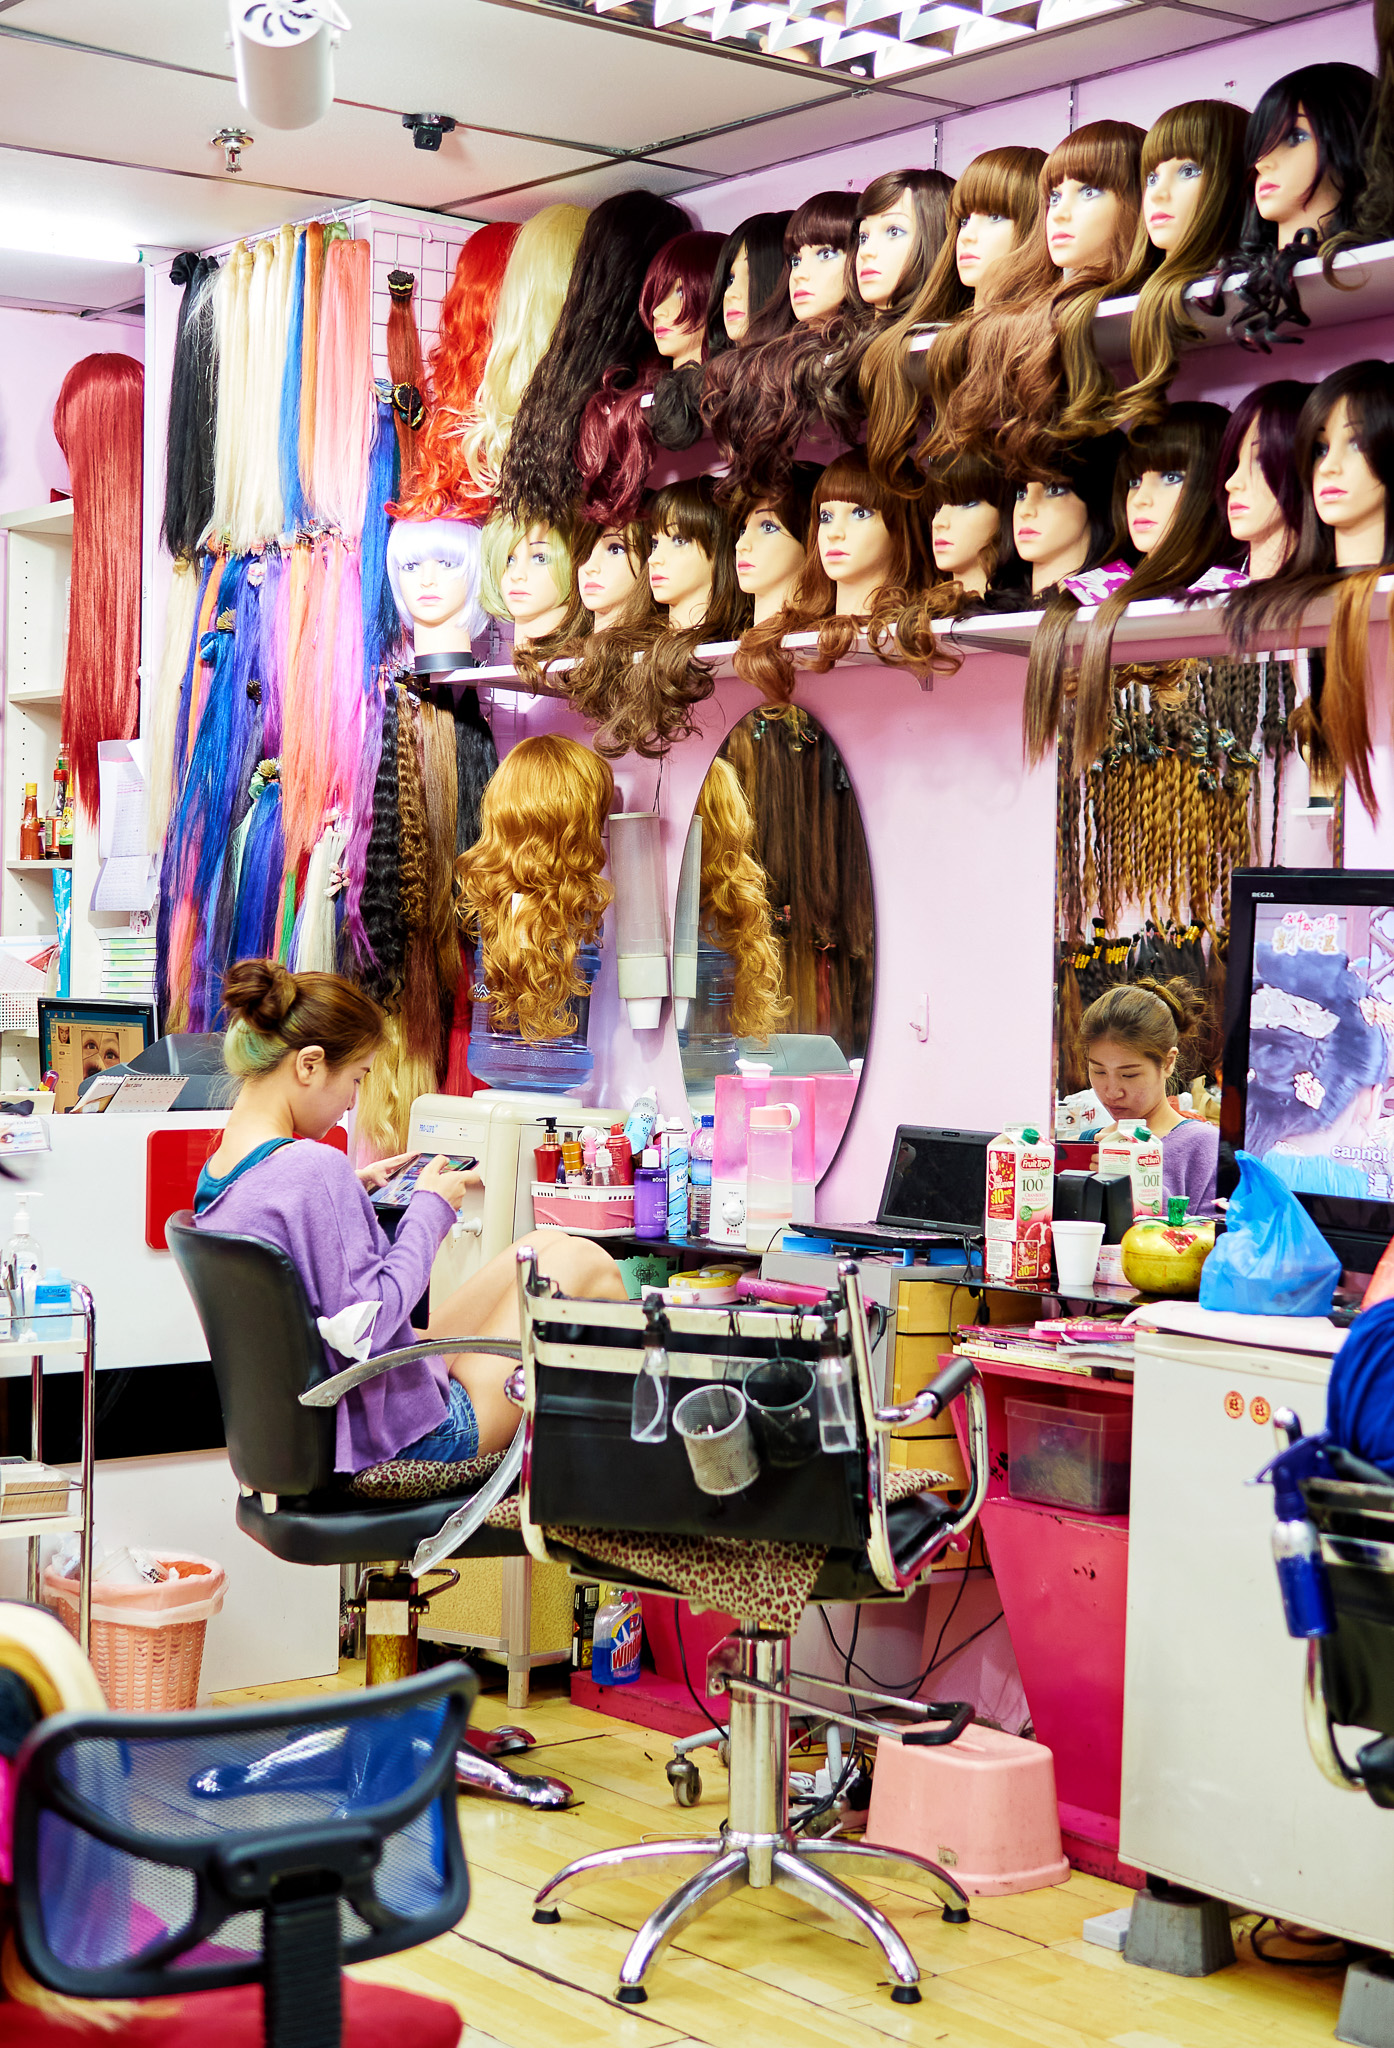 A young girl awaiting in the salon, filled with colorful hair wigs, Paya Lebar, Singapore